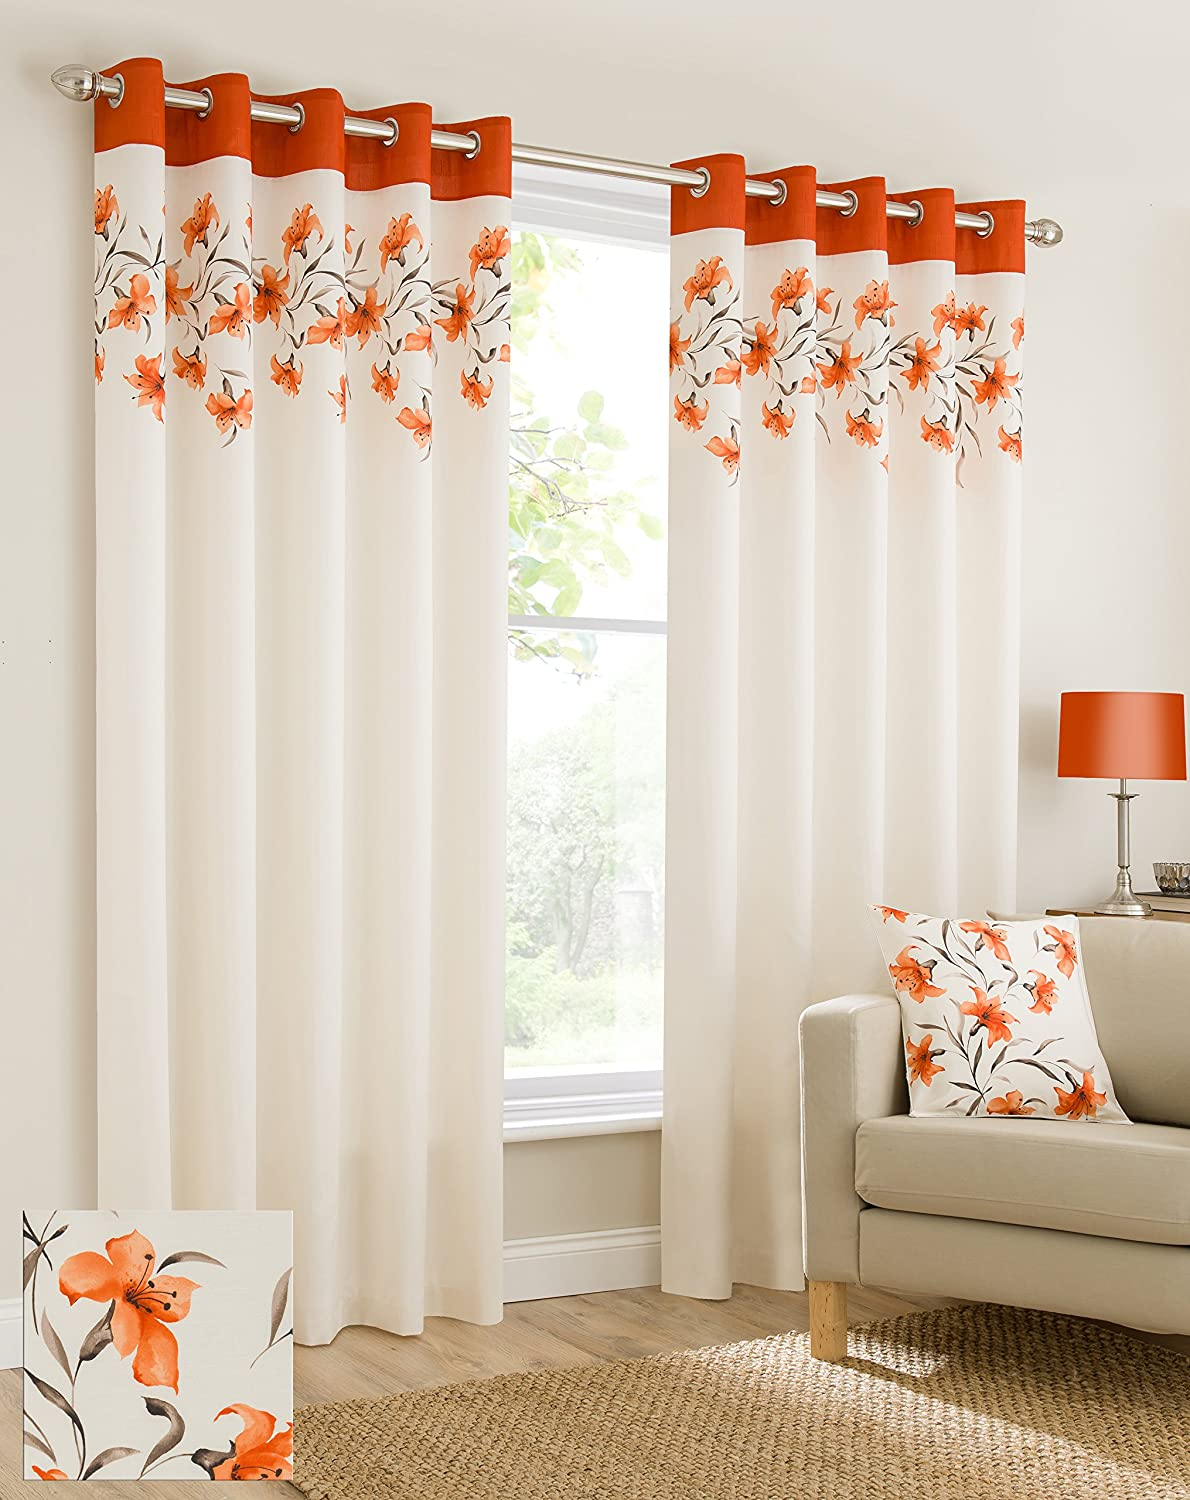 Plain Faux Silk Look Eyelet Ring Top Orange Cream Brown Fully Lined Curtains  Lily Flowers Floral Leaves 66x90 Inches 168cmx229cm Drop Eyelet Ring Top  Ready ...